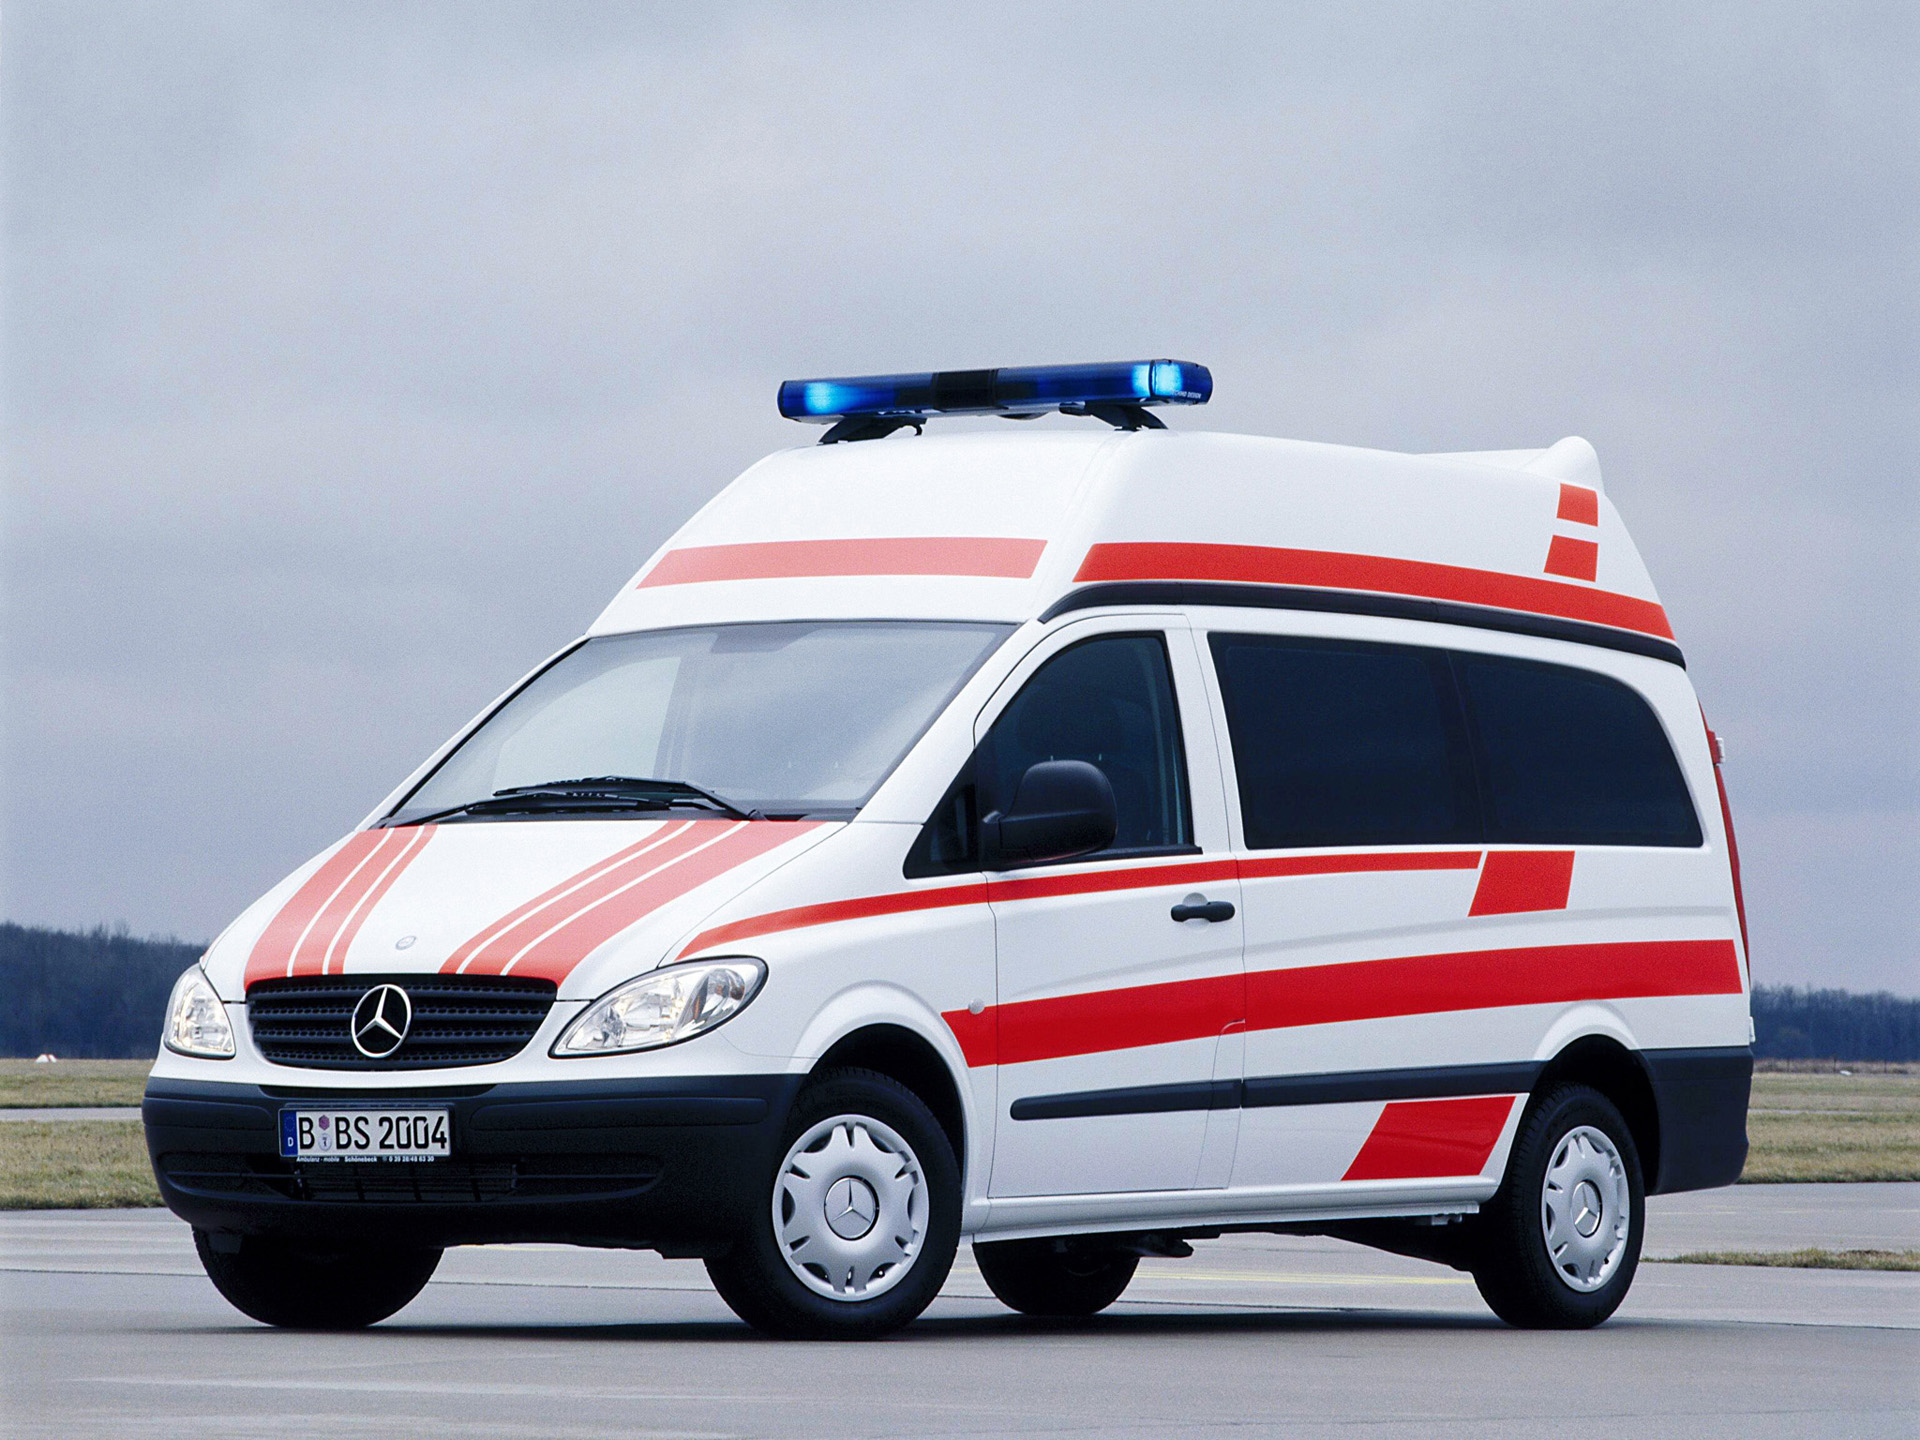 2004 mercedes benz vito ambulance w639 emergency wallpaper for Mercedes benz emergency